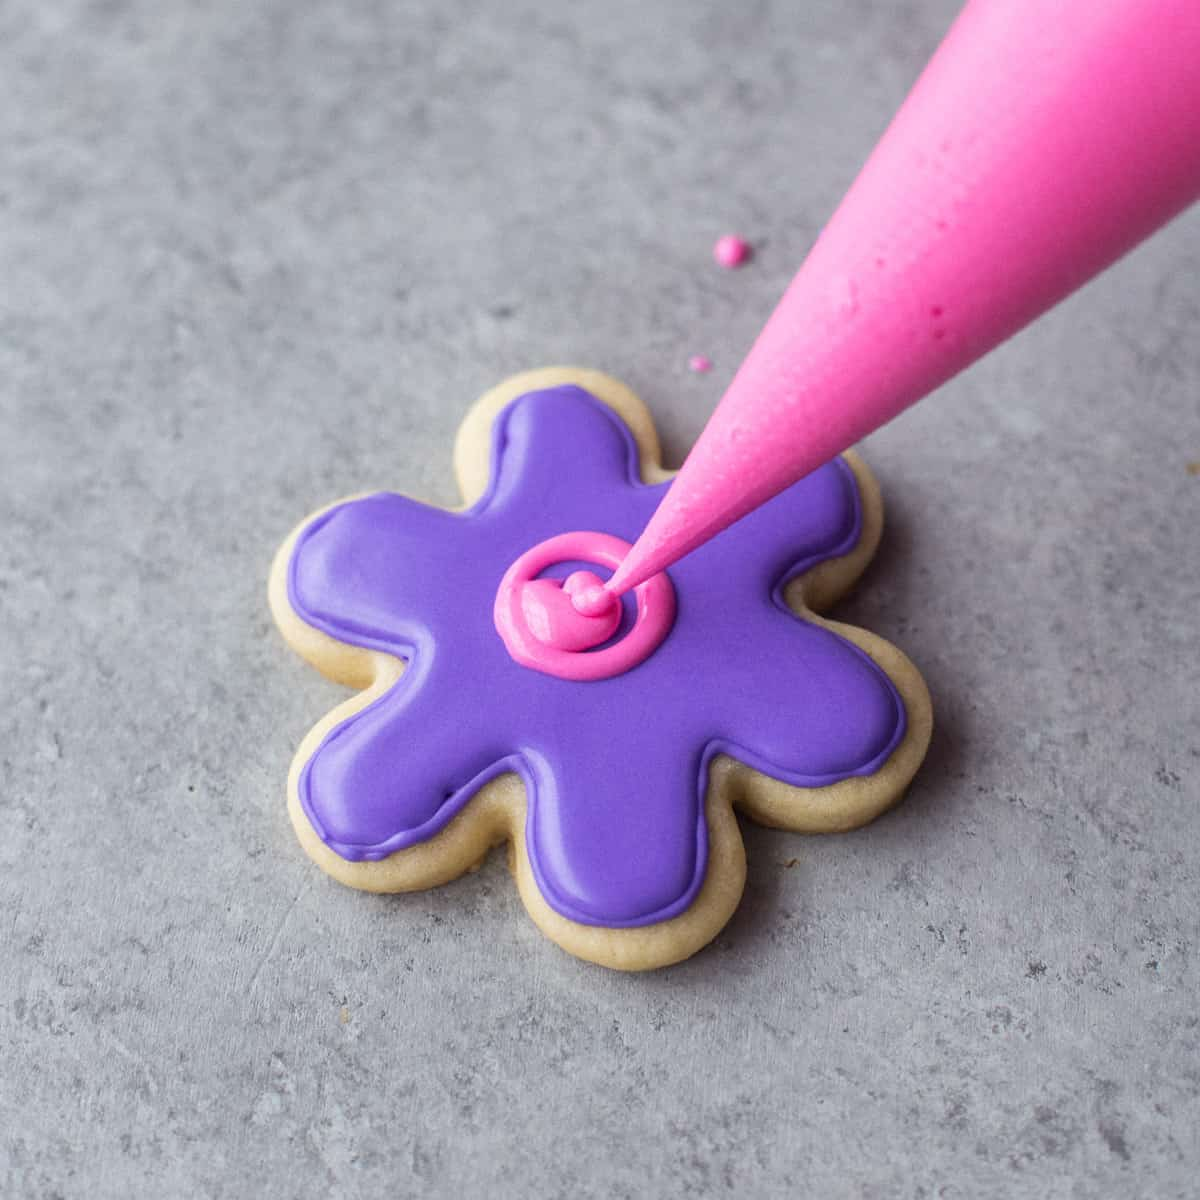 icing a flower-shaped sugar cookie